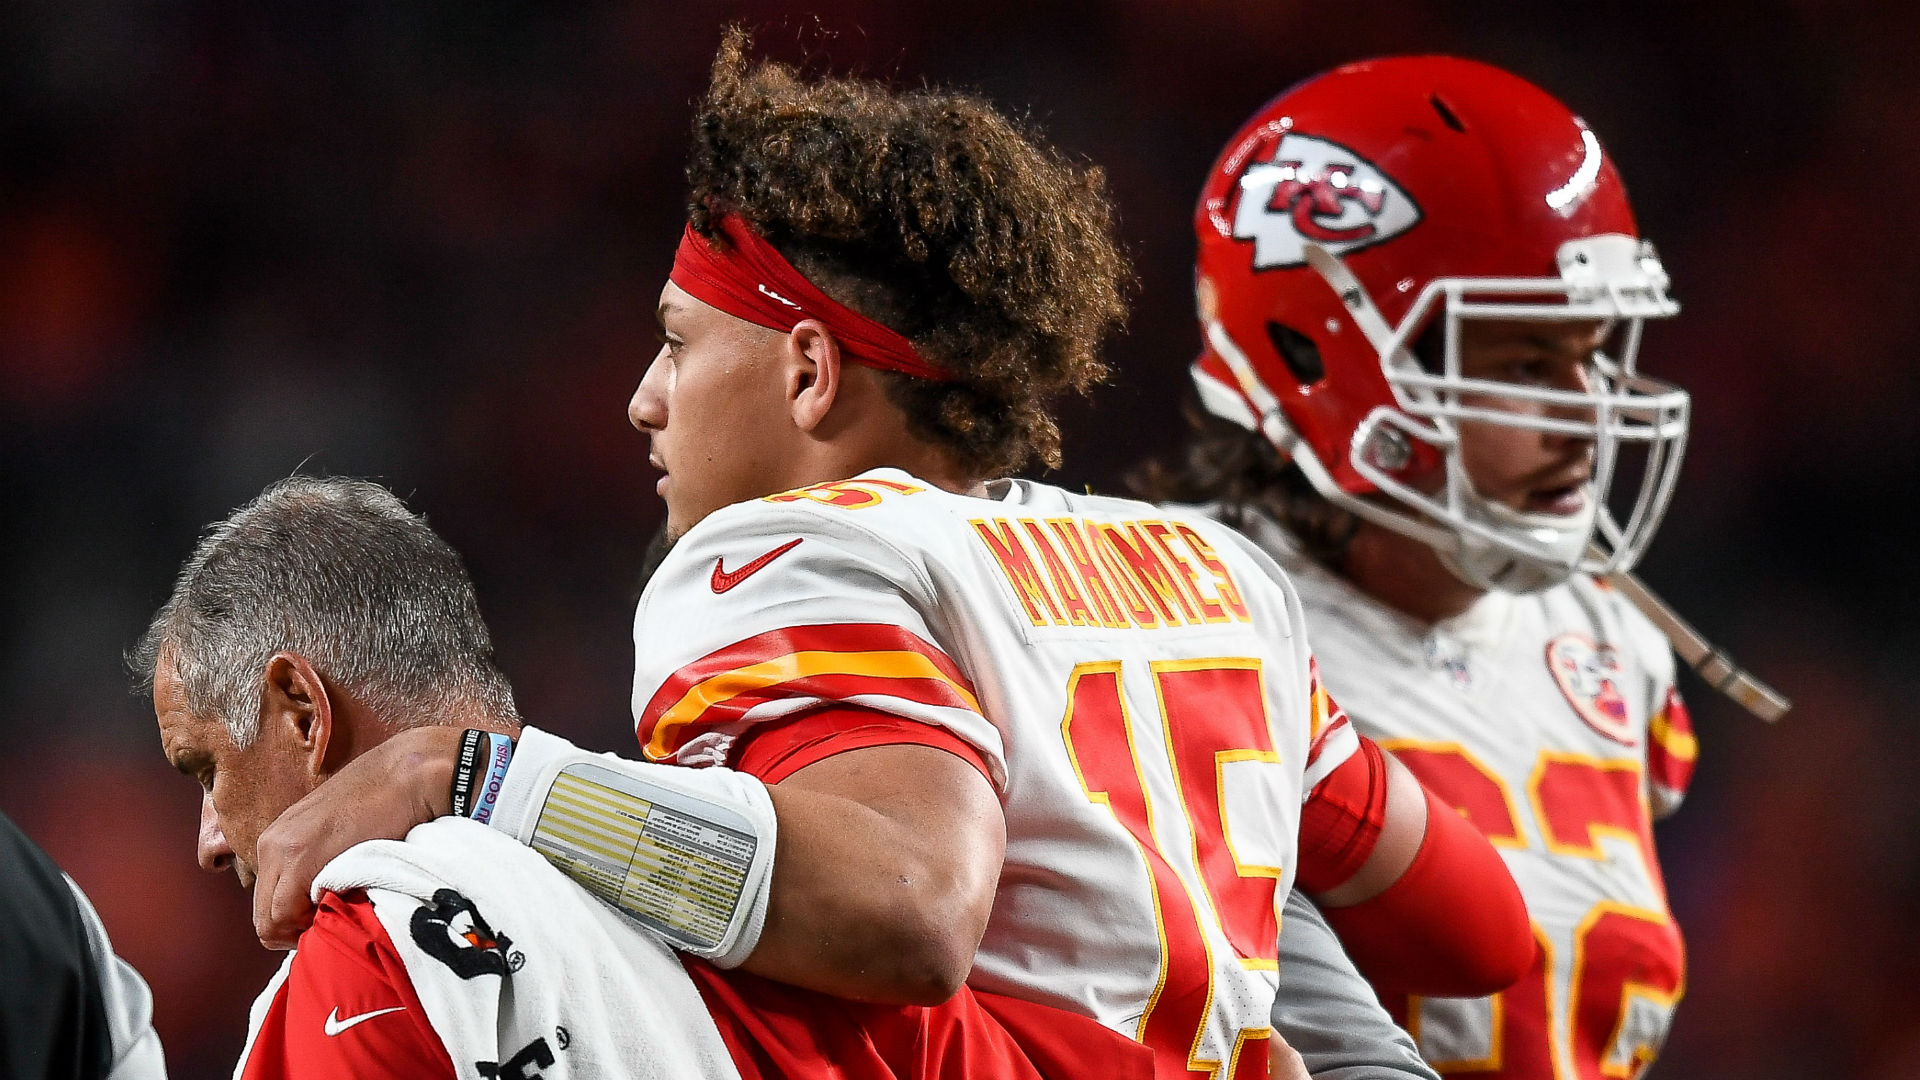 Patrick Mahomes injury update: Chiefs QB (knee) out 3-5 weeks, avoids 'major injury,' report says